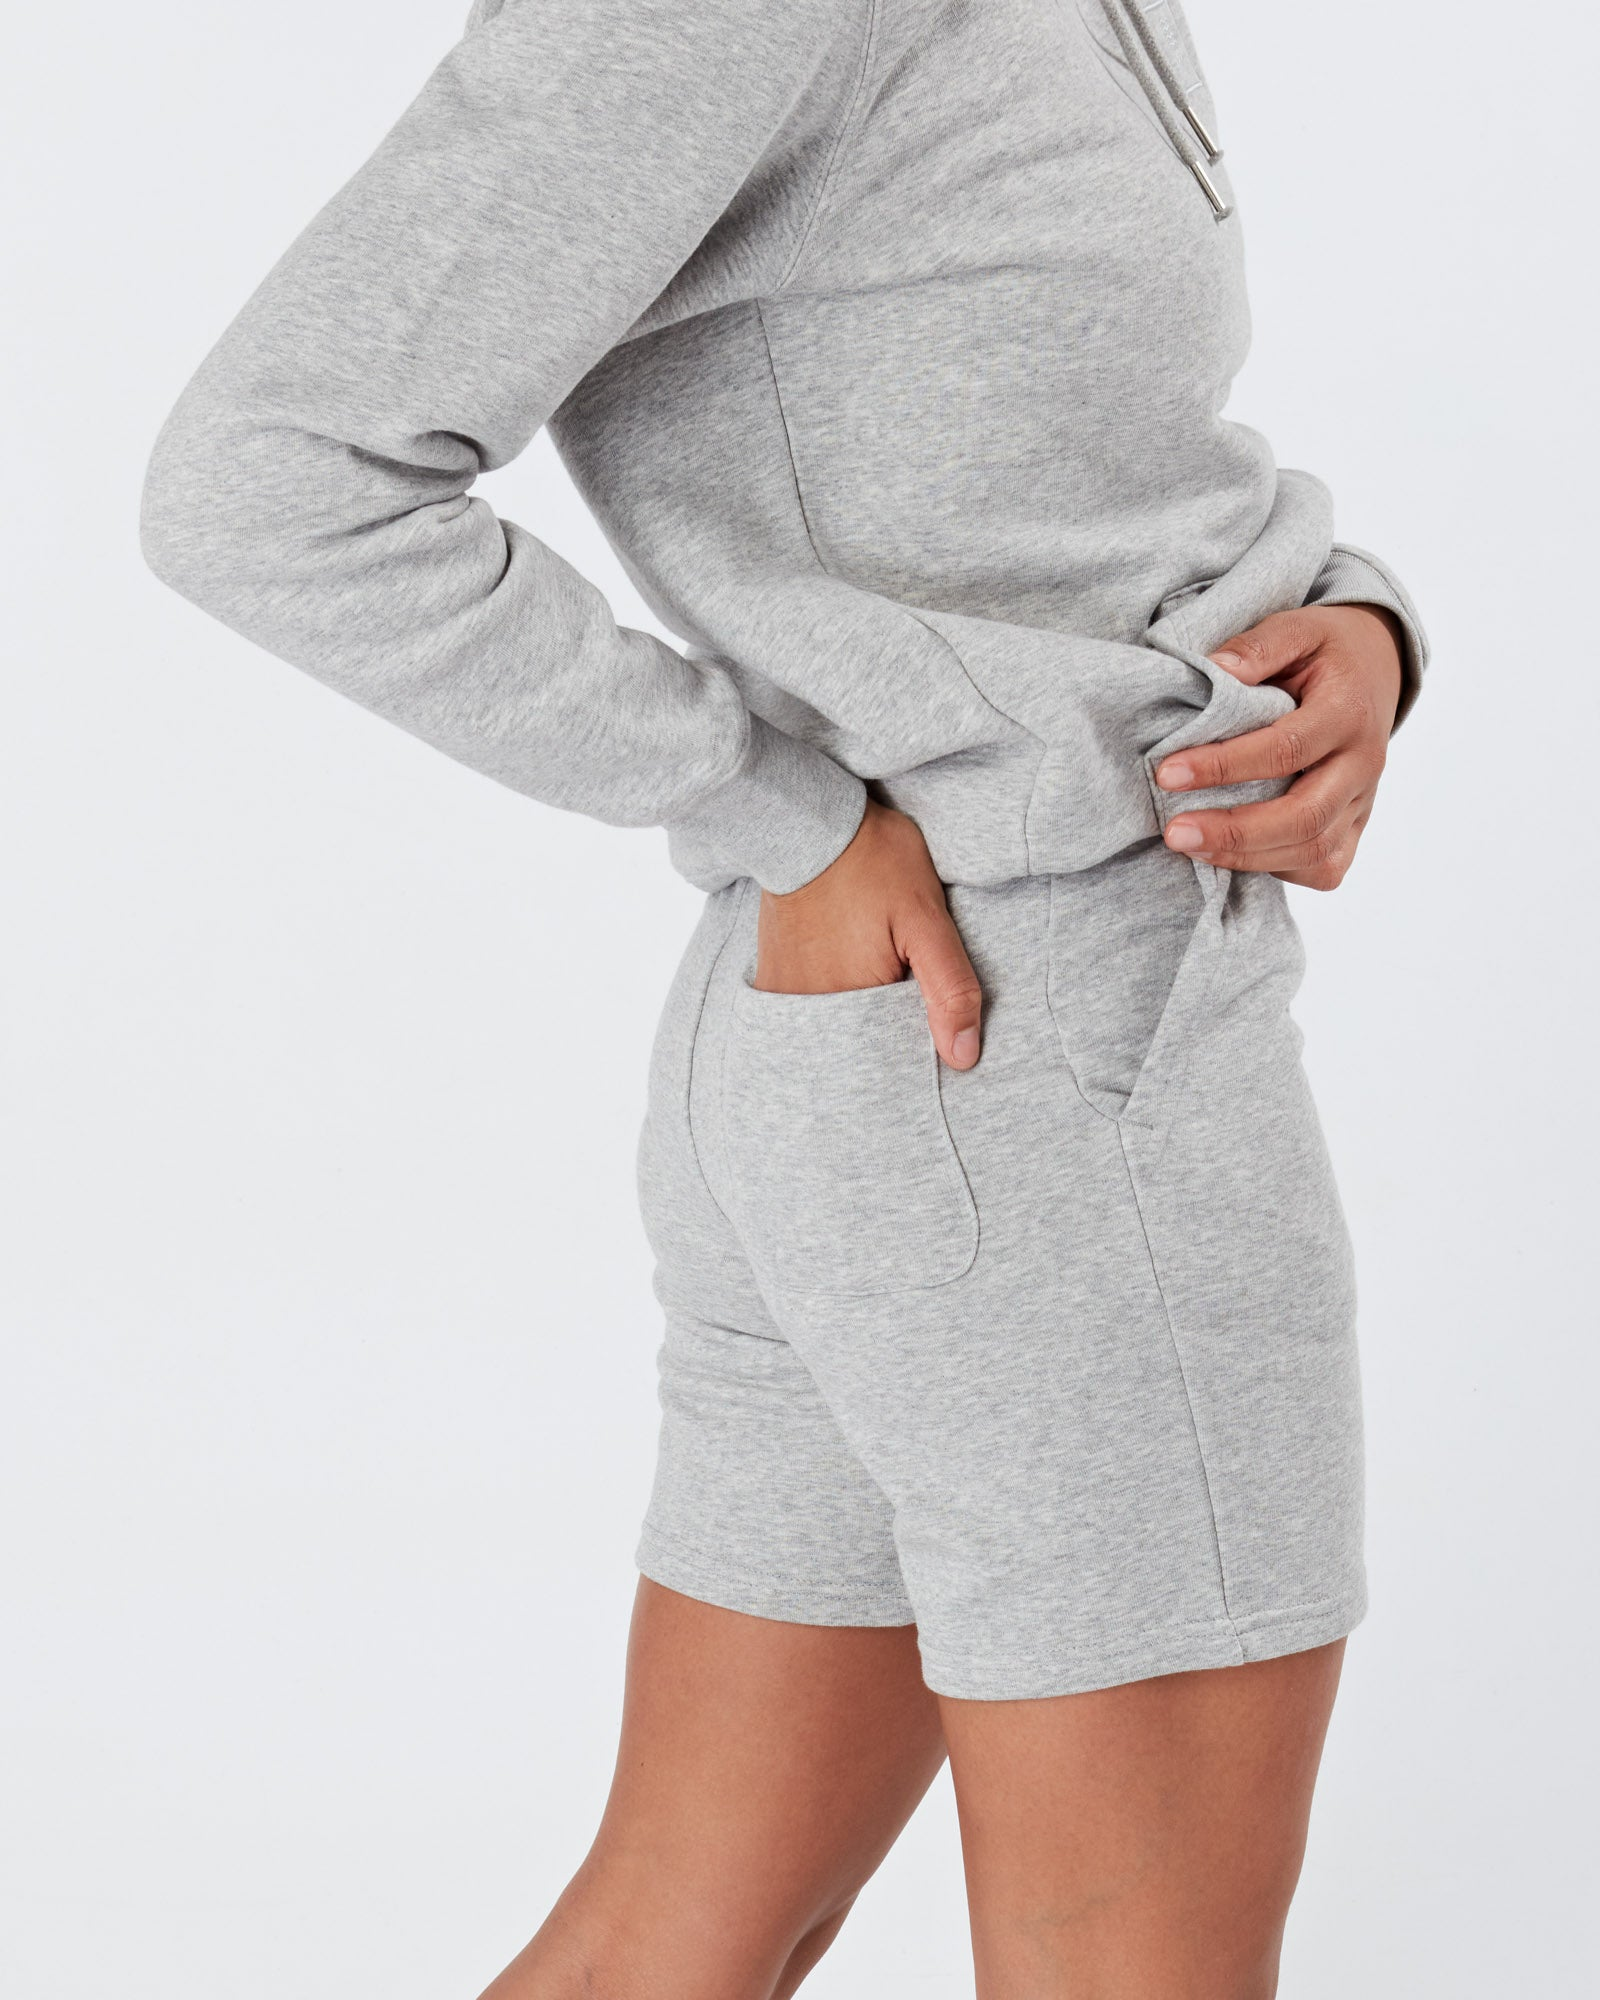 OC Lux Shorts - Grey